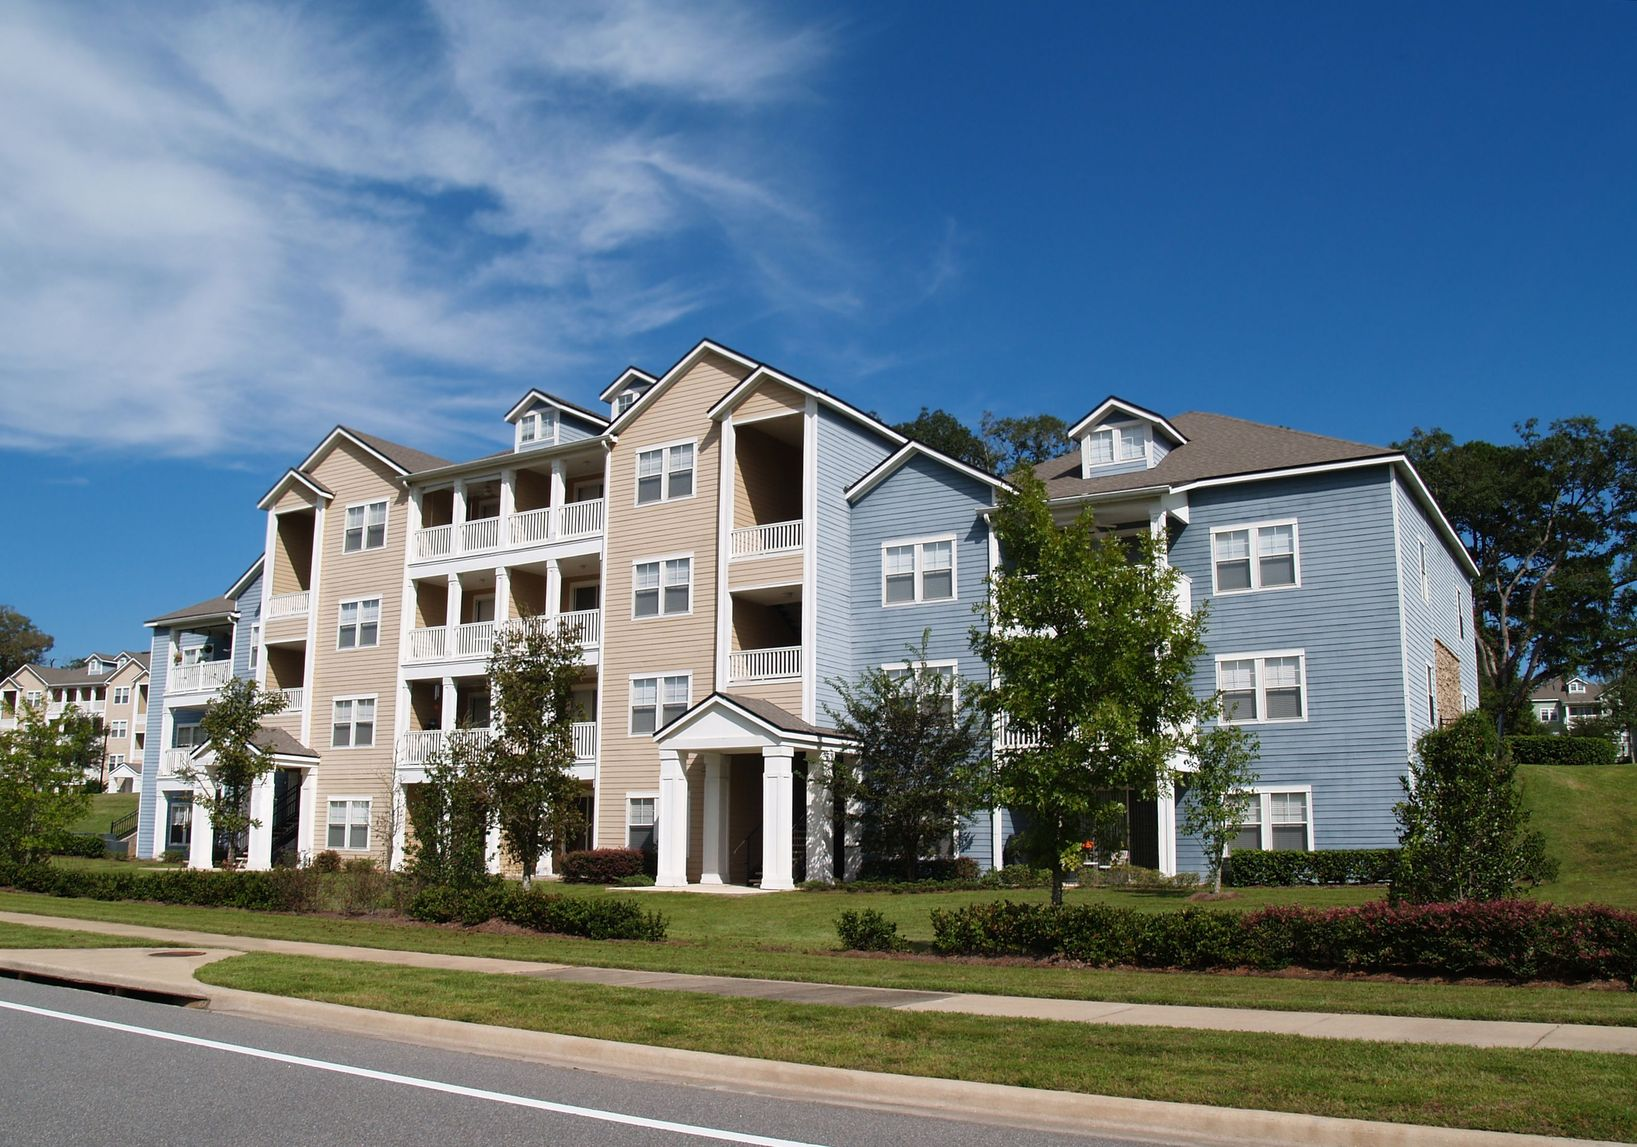 Magnolia, The Woodlands, TX. Apartment Owners Insurance